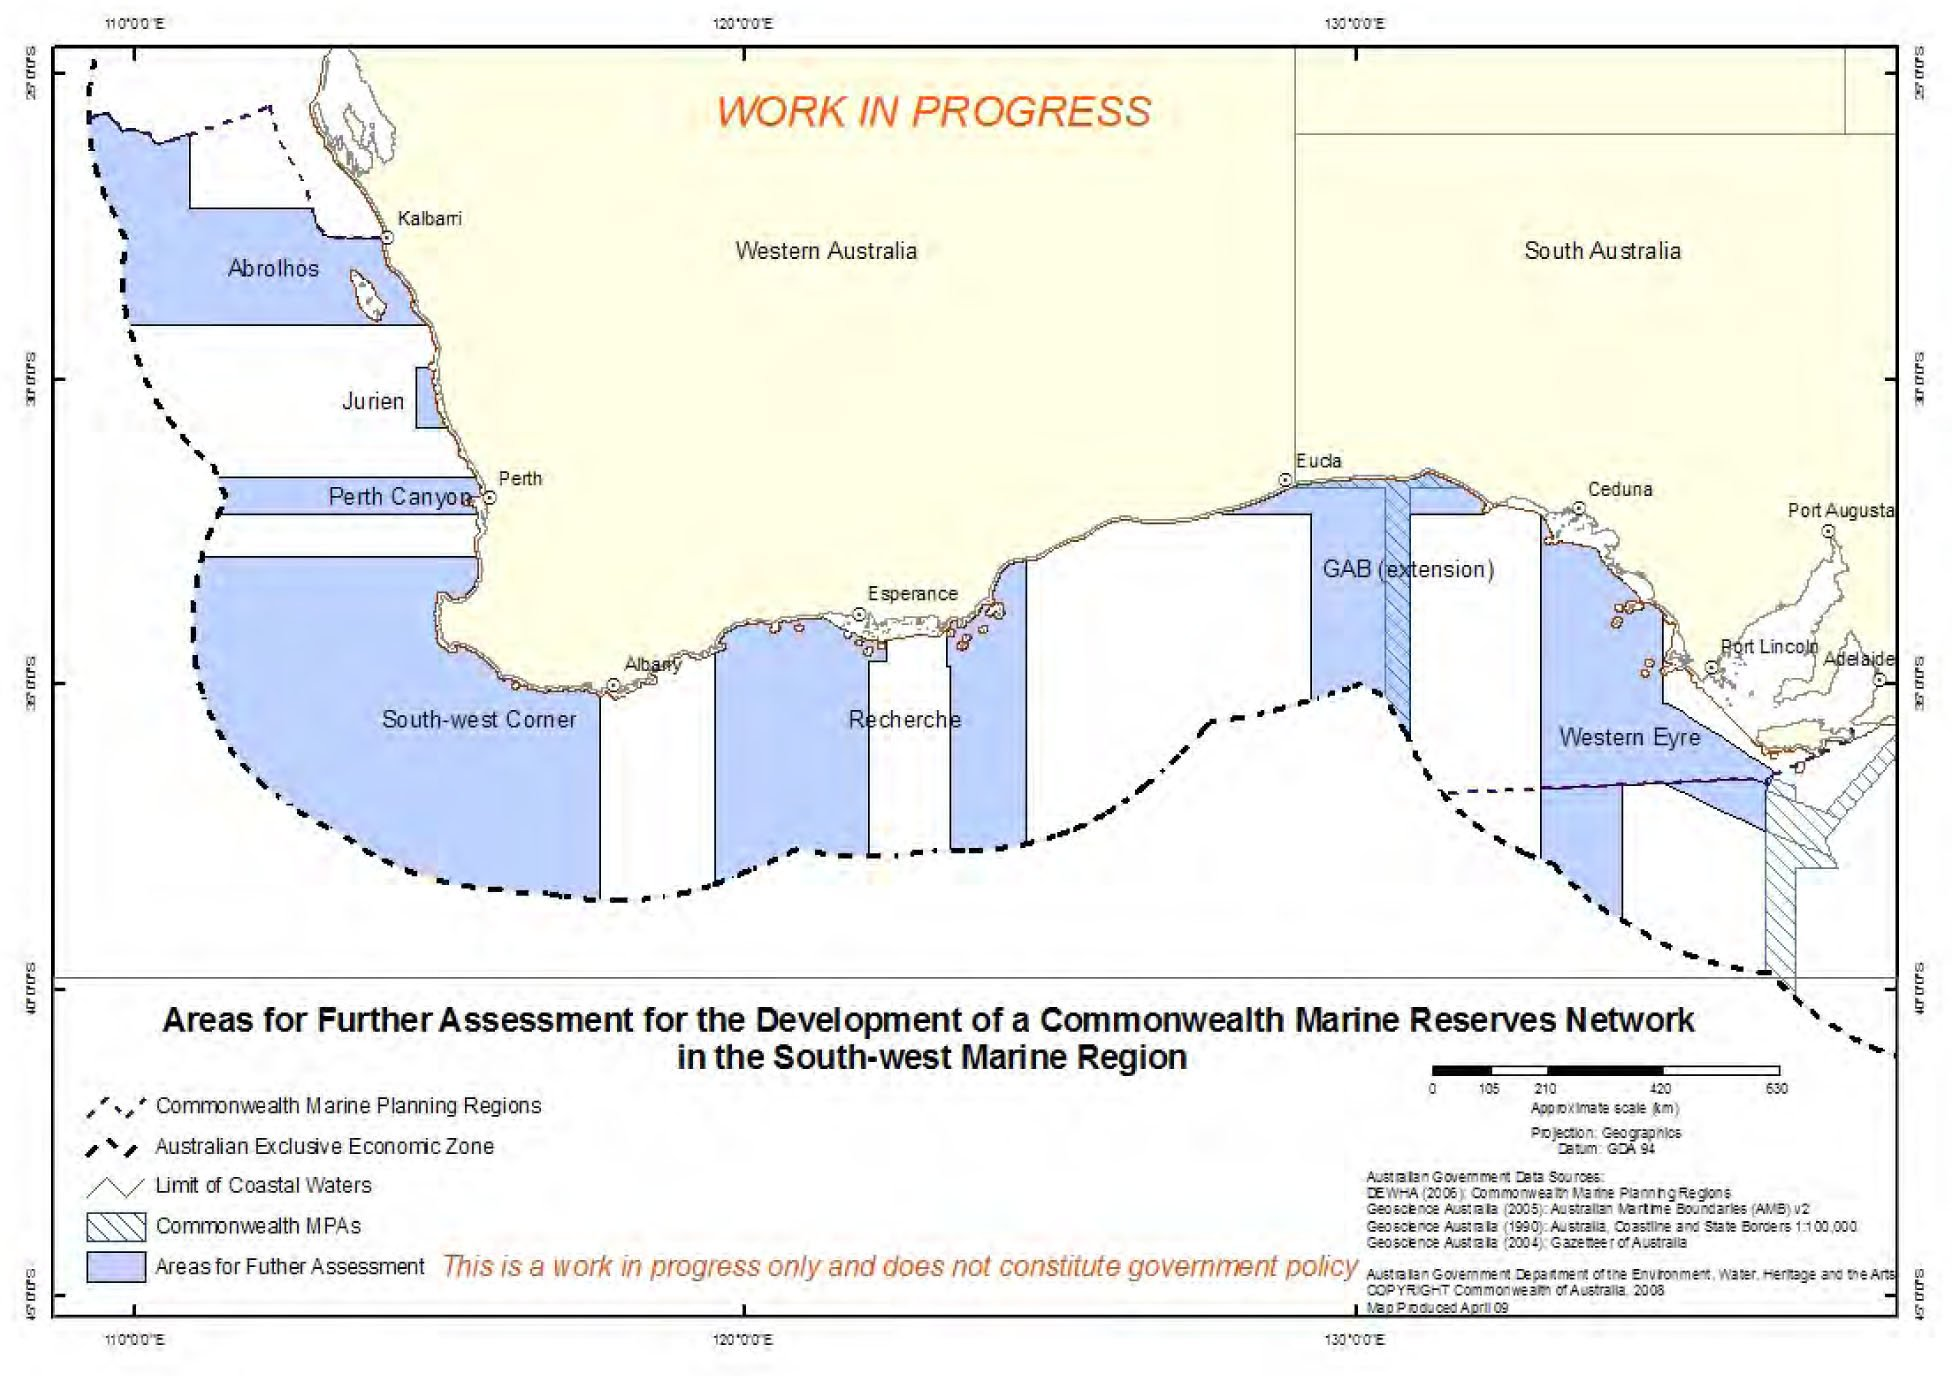 Map showing the Areas for Further Assessment in the South-west Marine Region